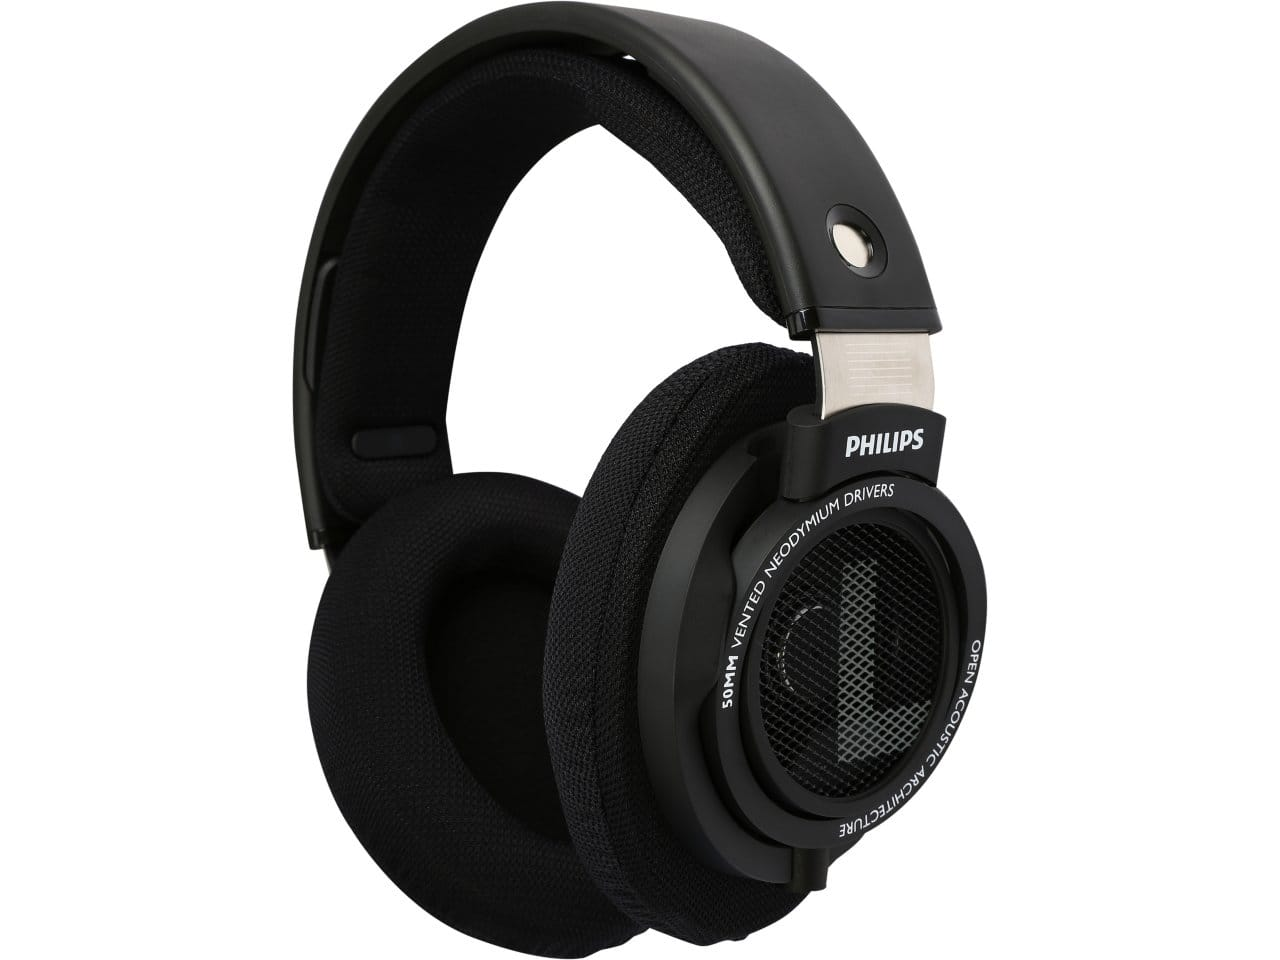 Philips SHP9500 Over-Ear Headphones for $49.99 AR or Mee Audio Air-Fi Venture 2nd Gen Bluetooth Over-Ear Headphones for $24.99 AR + Free Shipping @ Newegg.com